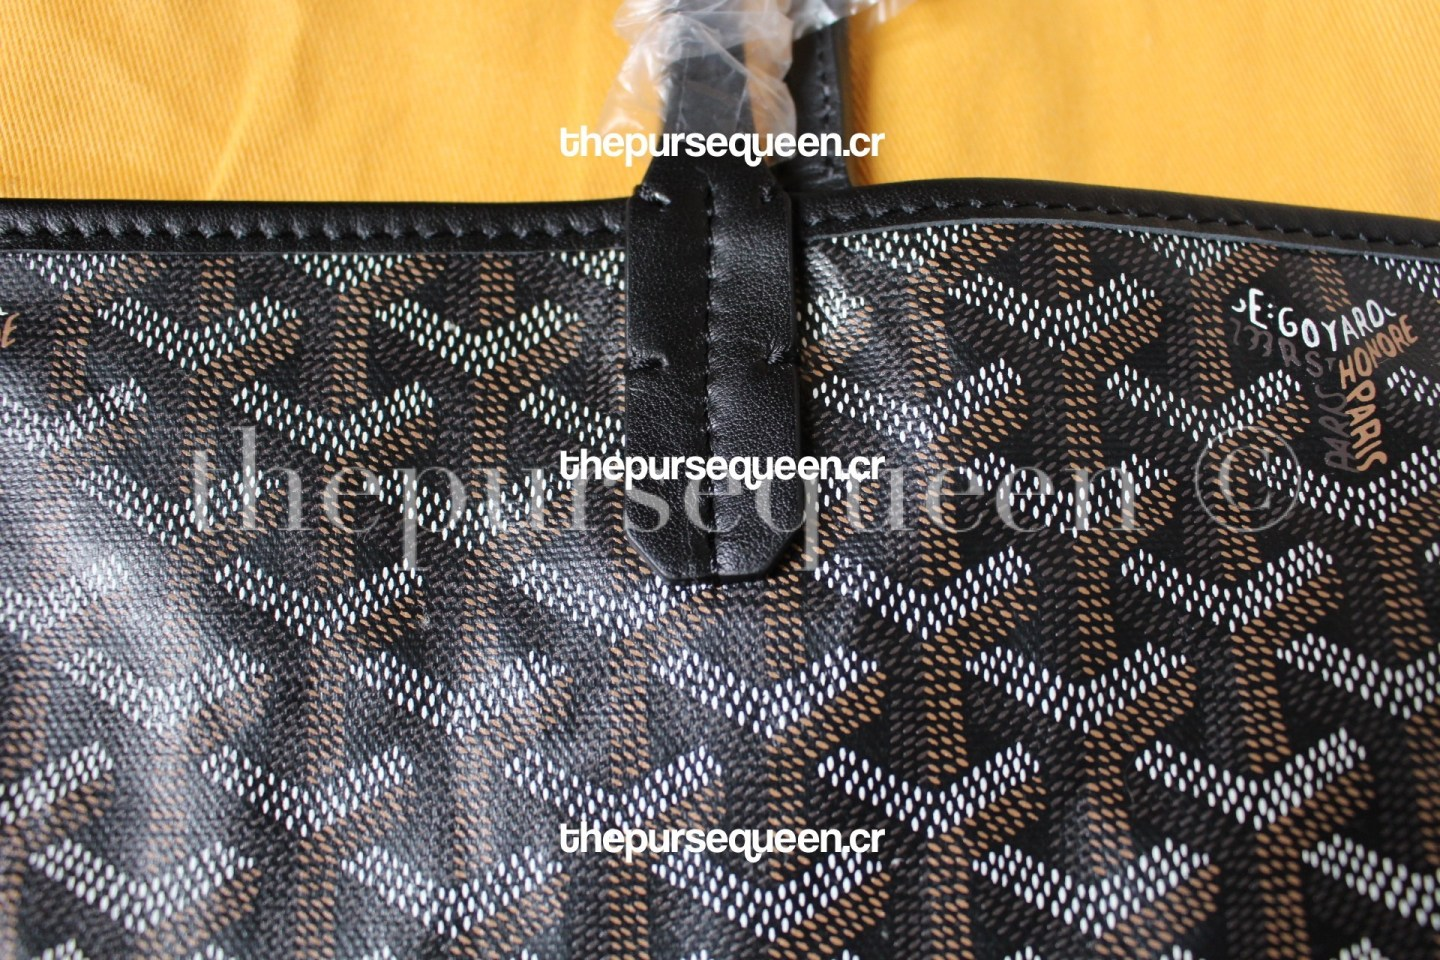 goyard-replica-saint-st-louis-tote-review-replicabags-fakevsreal-3